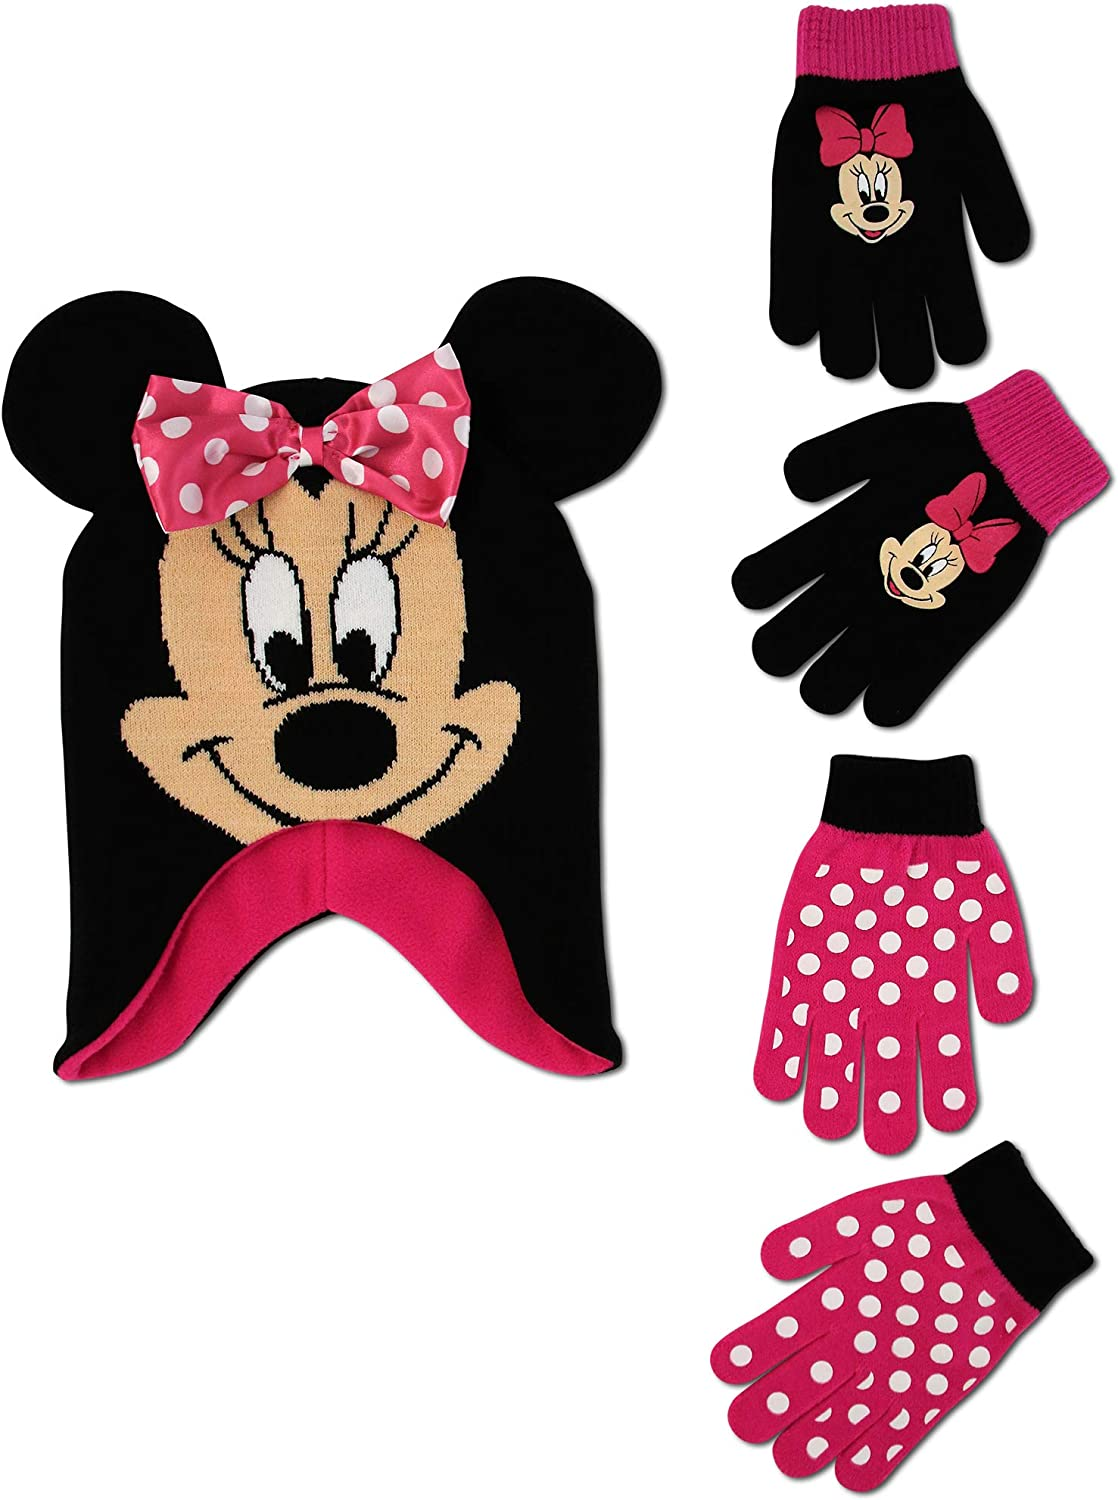 Disney Girls Minnie Mouse and Vampirina Winter Hat and 2 Pair Mitten or Glove Set (Toddler/Little Girl), Hot Pink Minnie Gloves 4-7